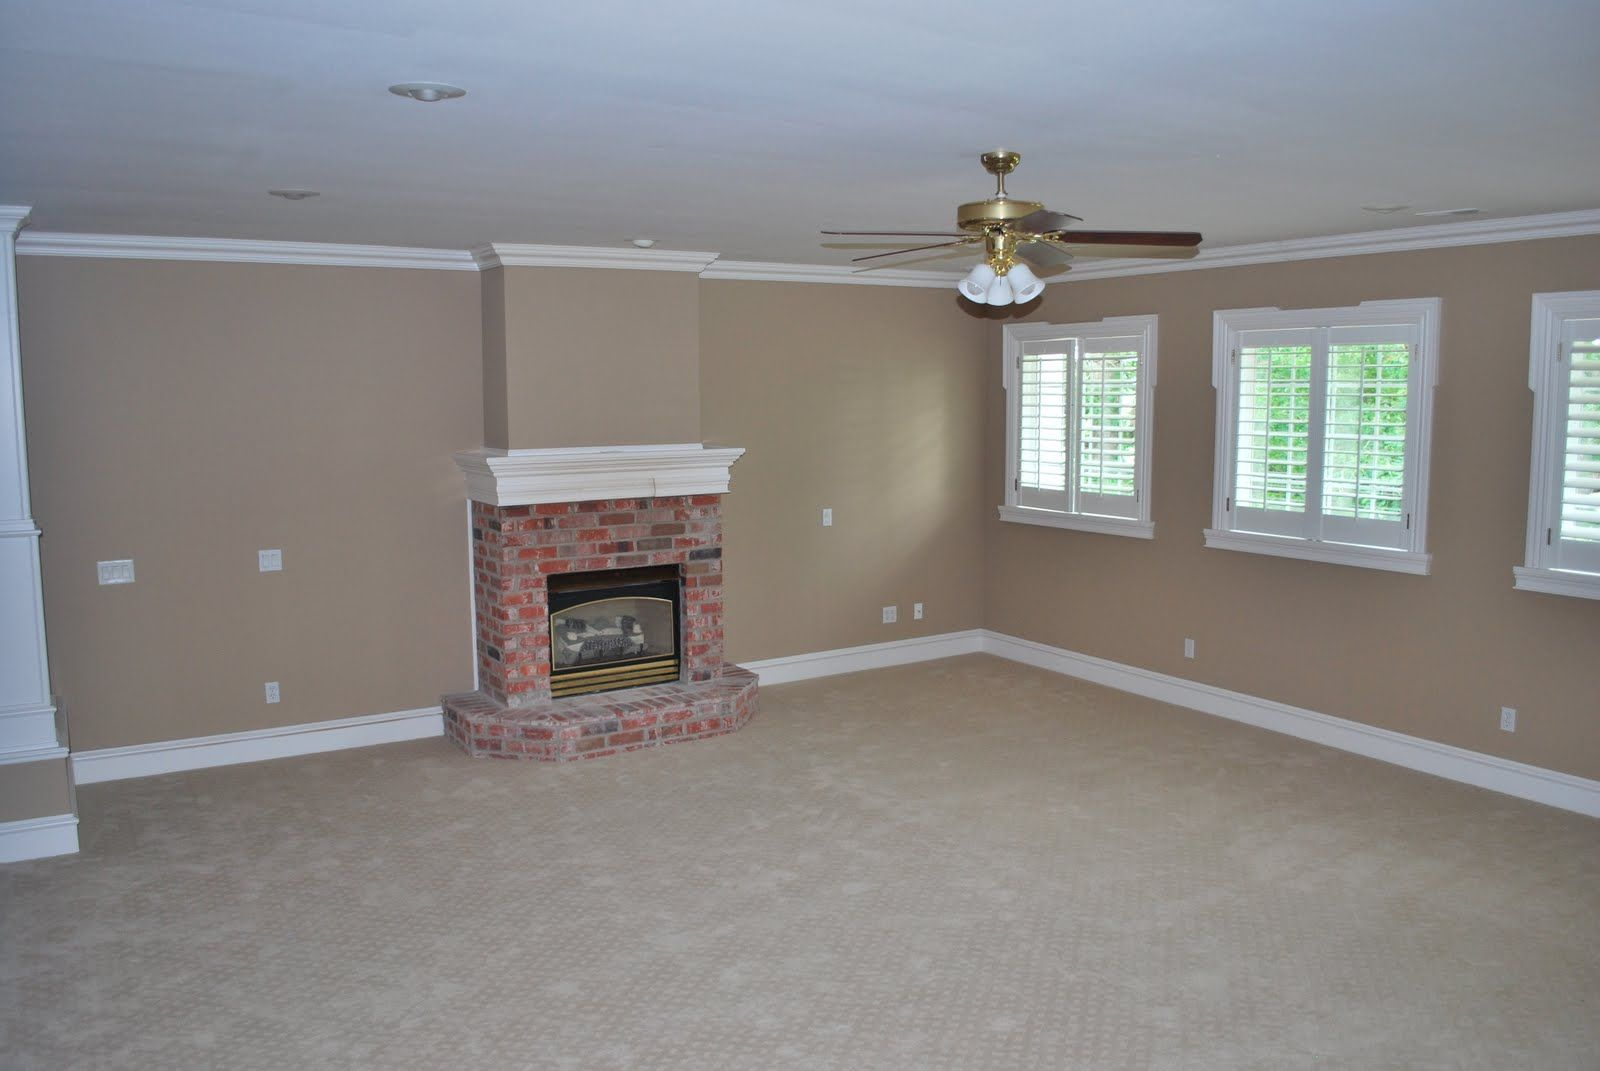 She S A Brick House Living Rooms Family Room Paint Colors